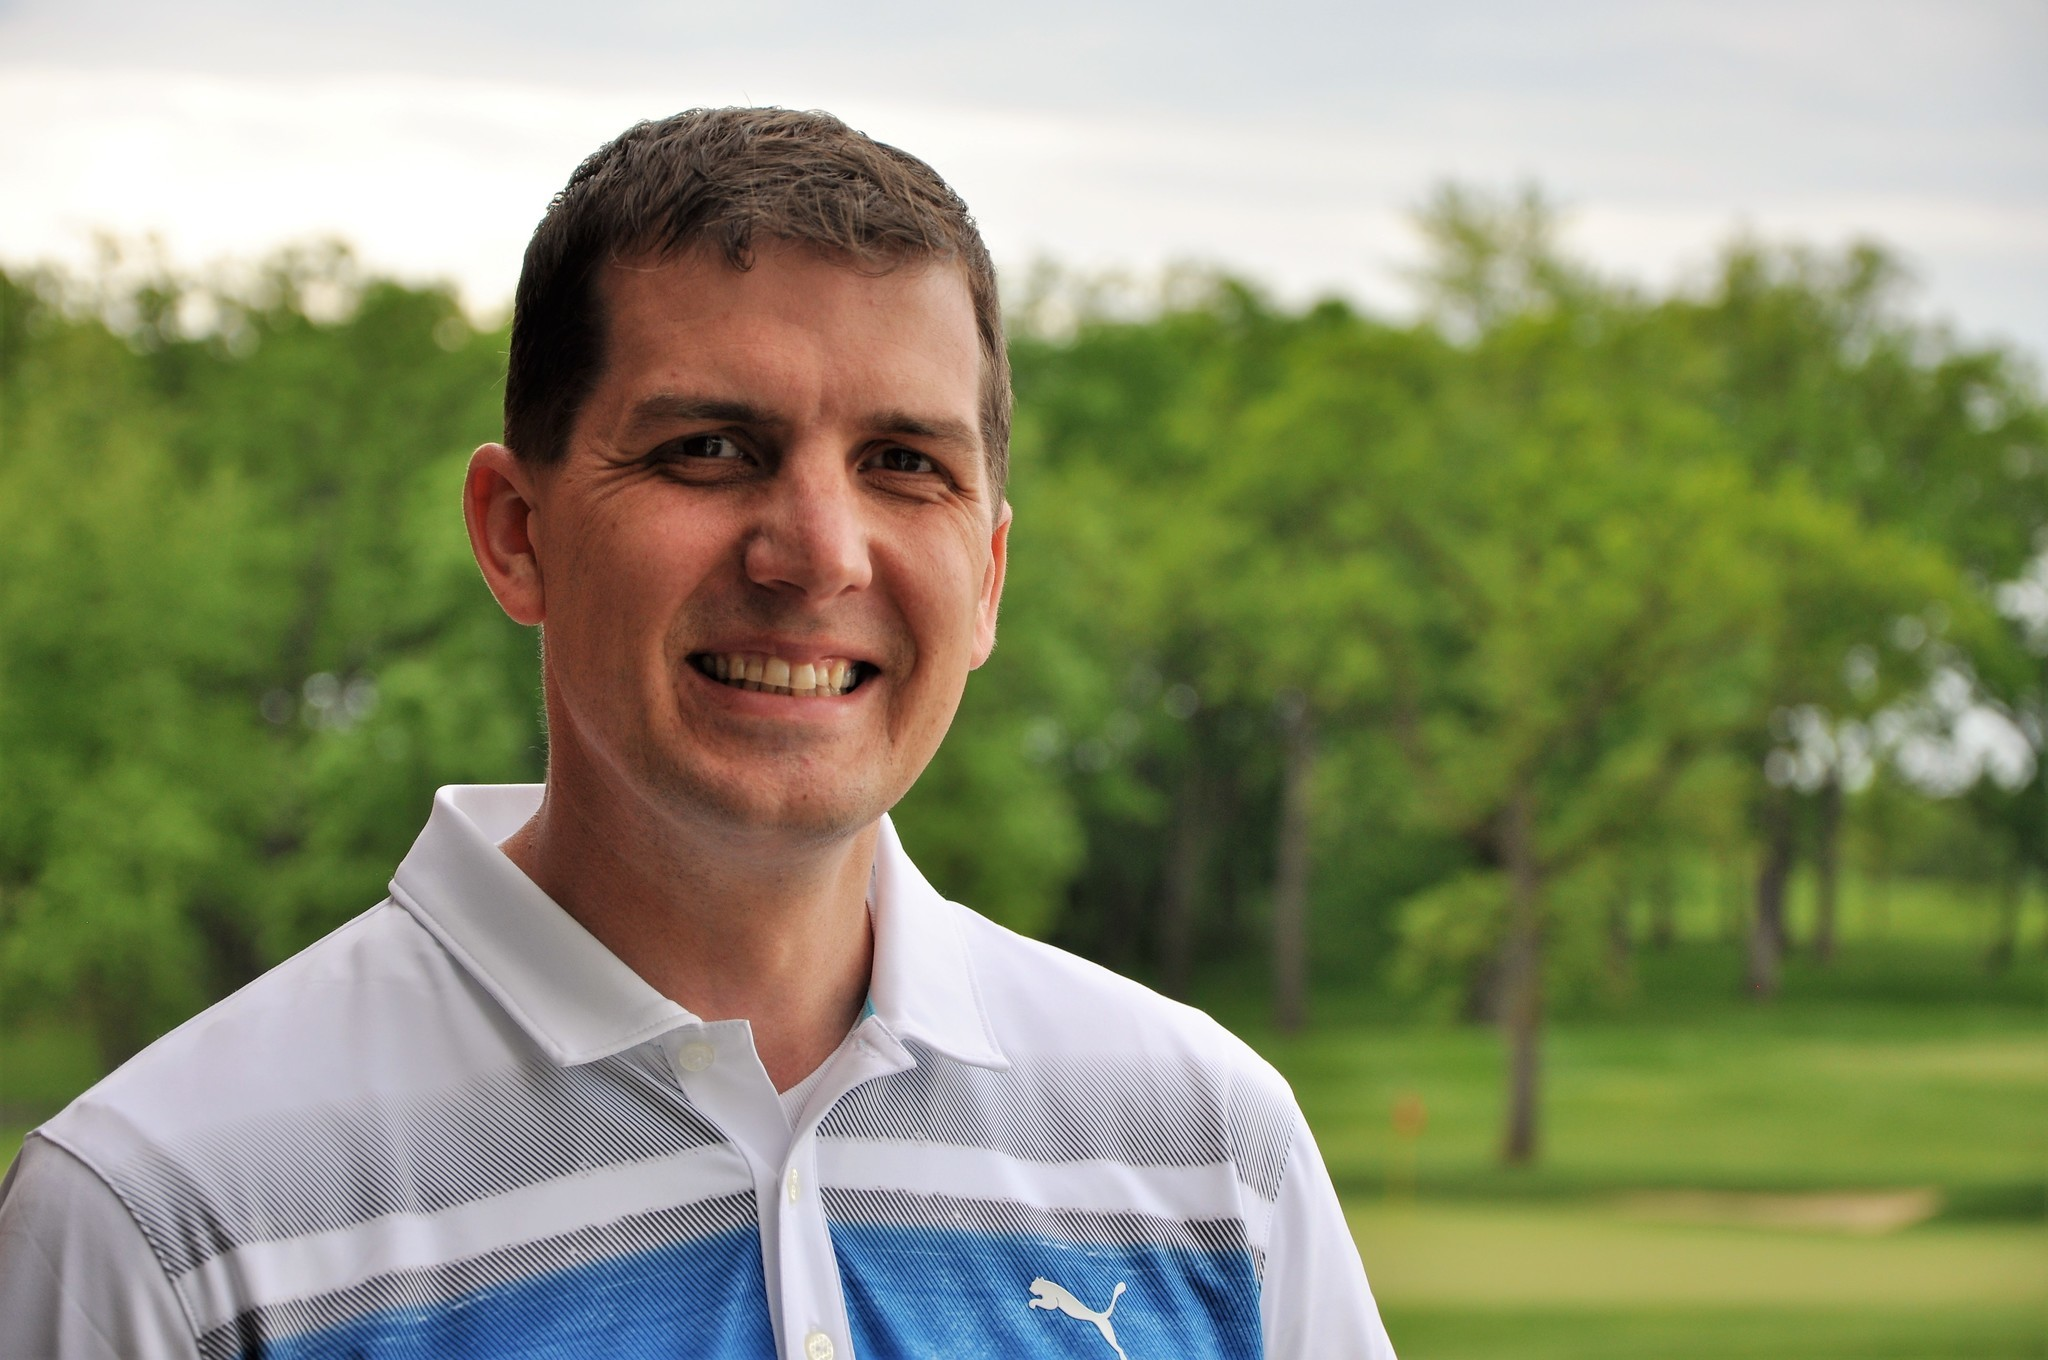 Chris pieters named food beverage director at cantigny for Cantigny le jardin